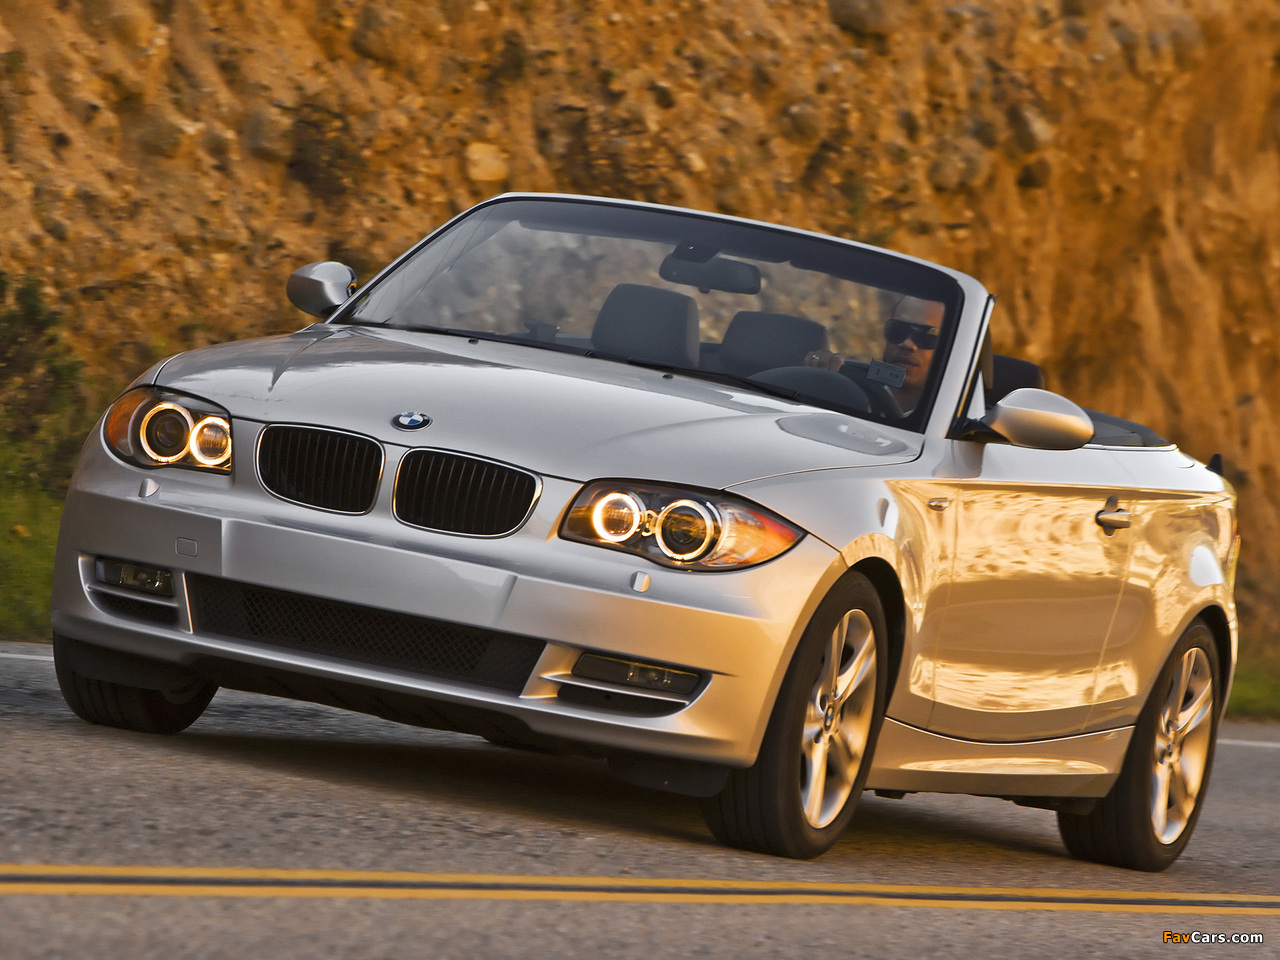 Images Of Bmw 128i Cabrio Us Spec E88 2008 10 1280x960